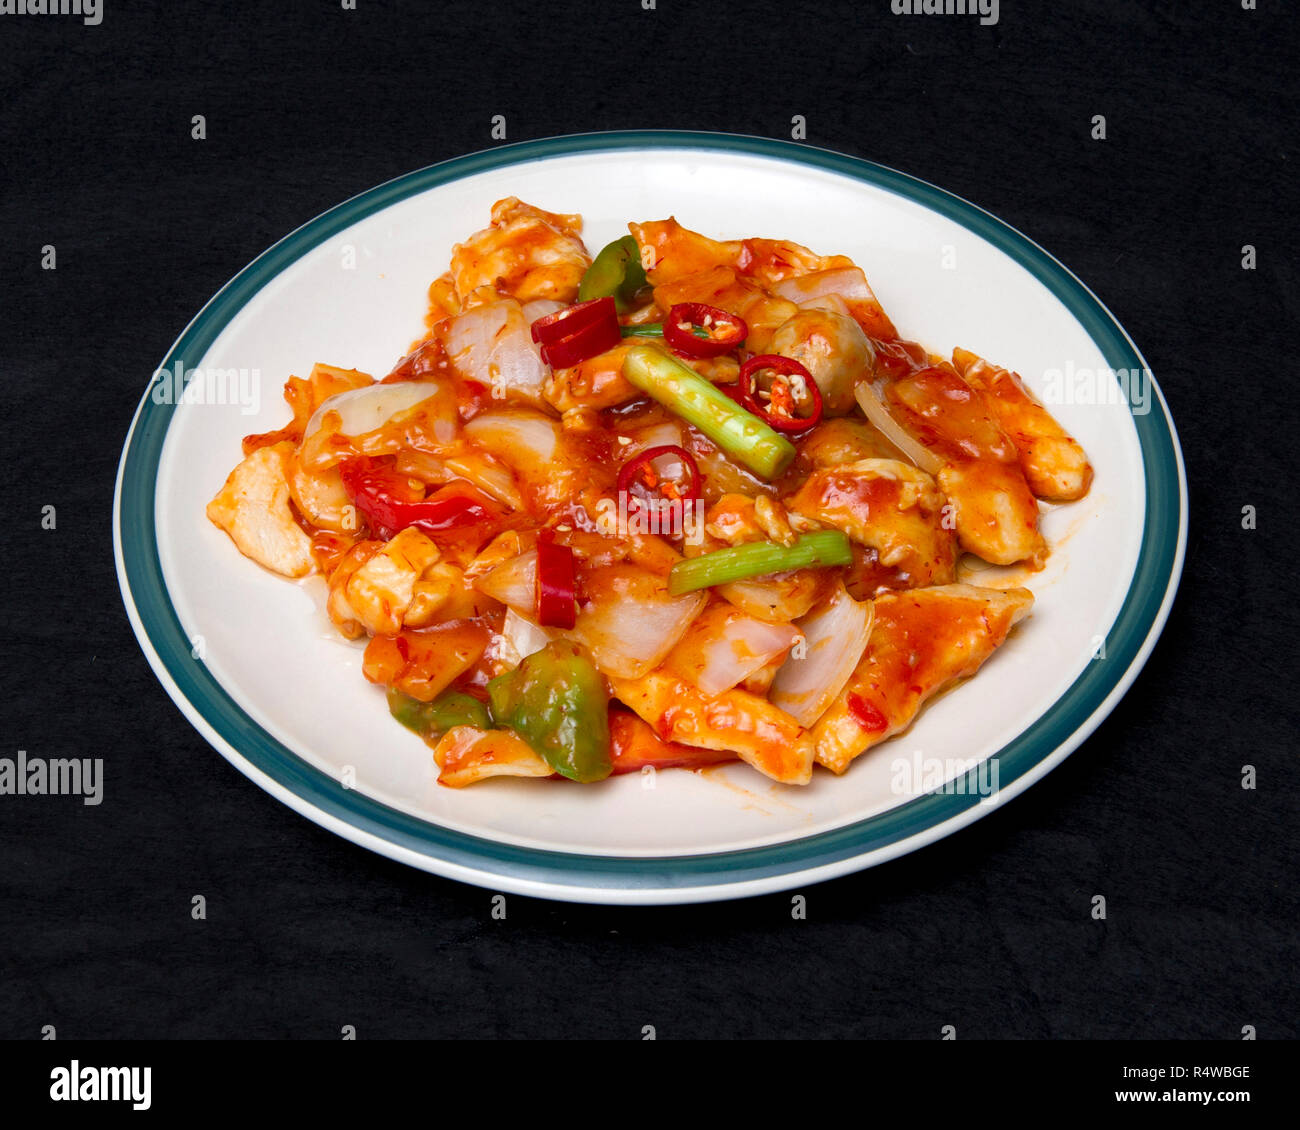 Chinese food, Szechuan chicken Stock Photo